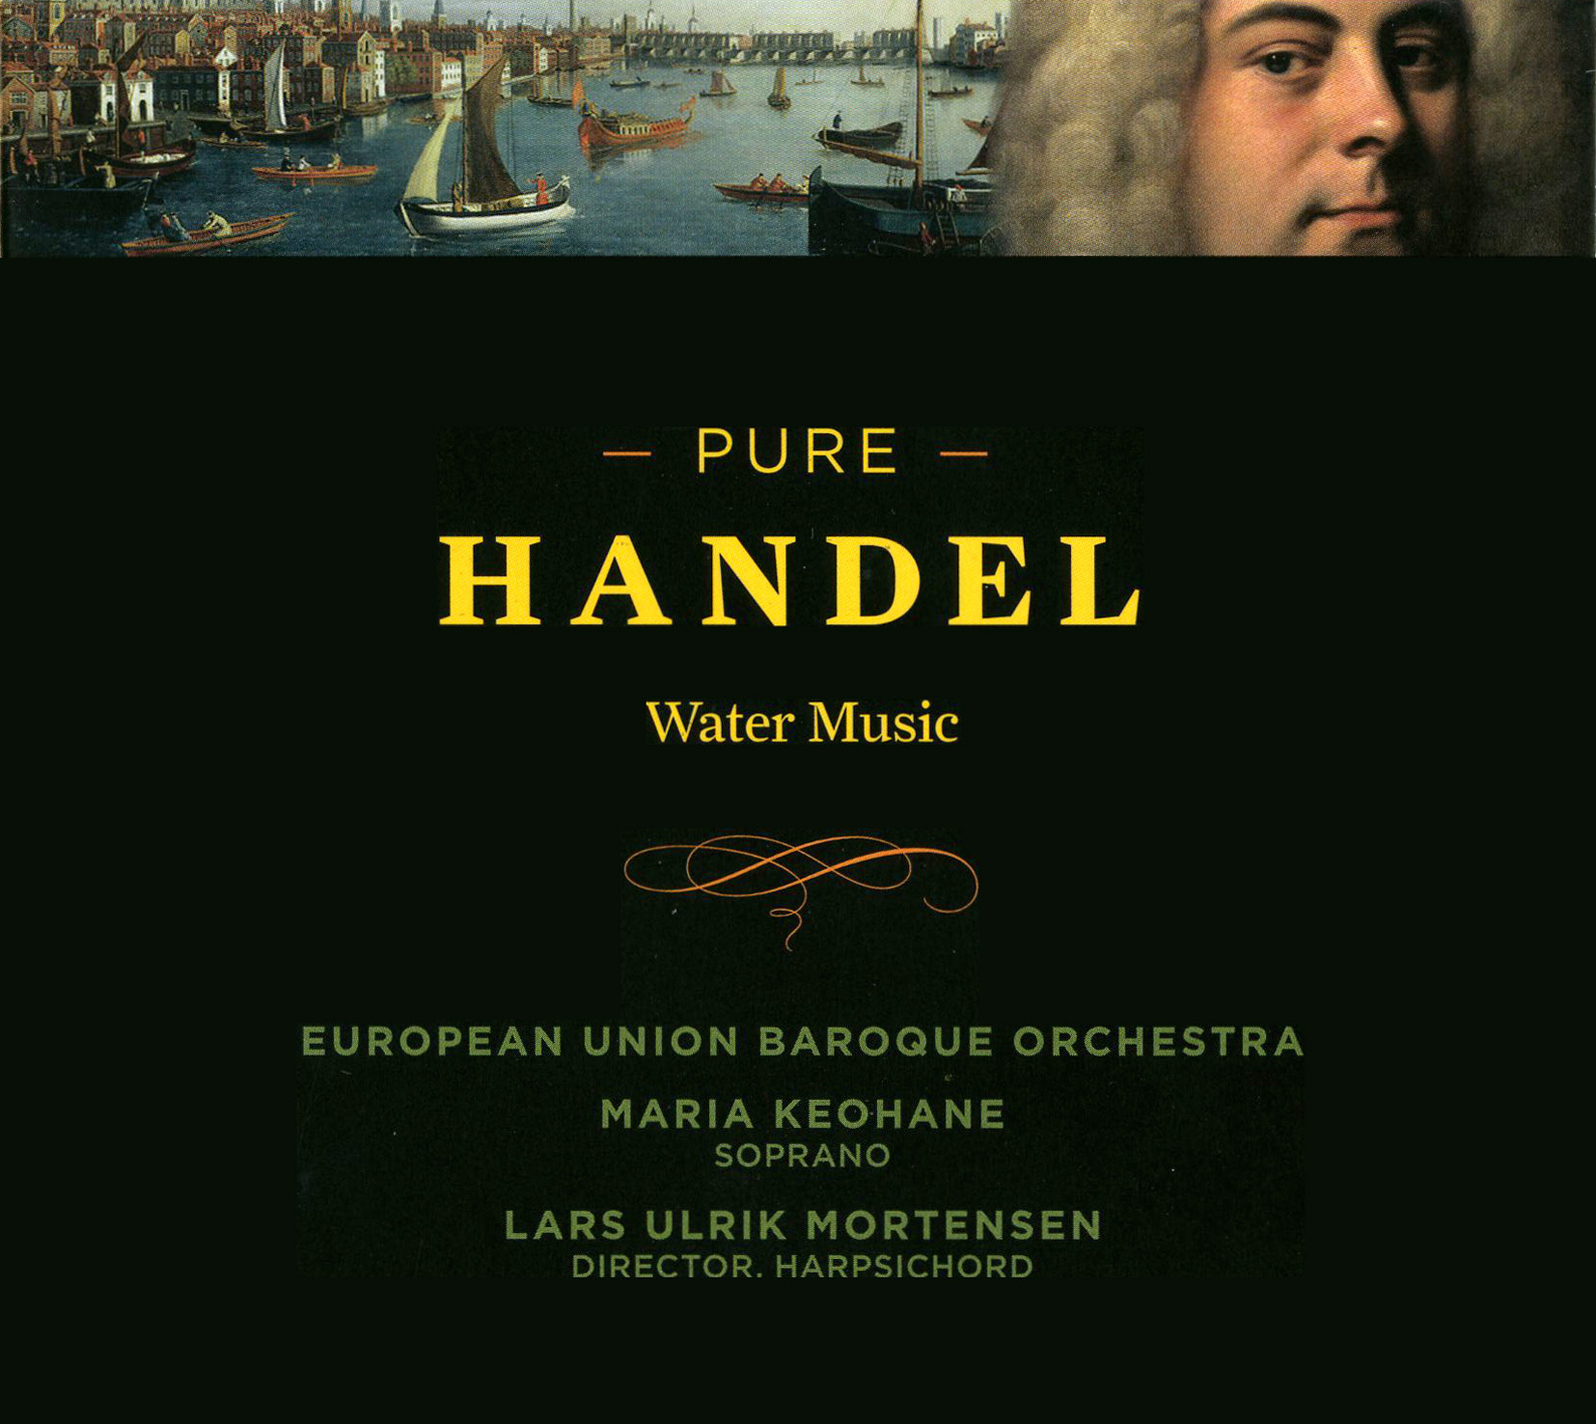 Water Music Suite No. 2 in F Major, HWV 348, Water Music Suite No. 2 in F Major, HWV 348: II. Adagio e staccato